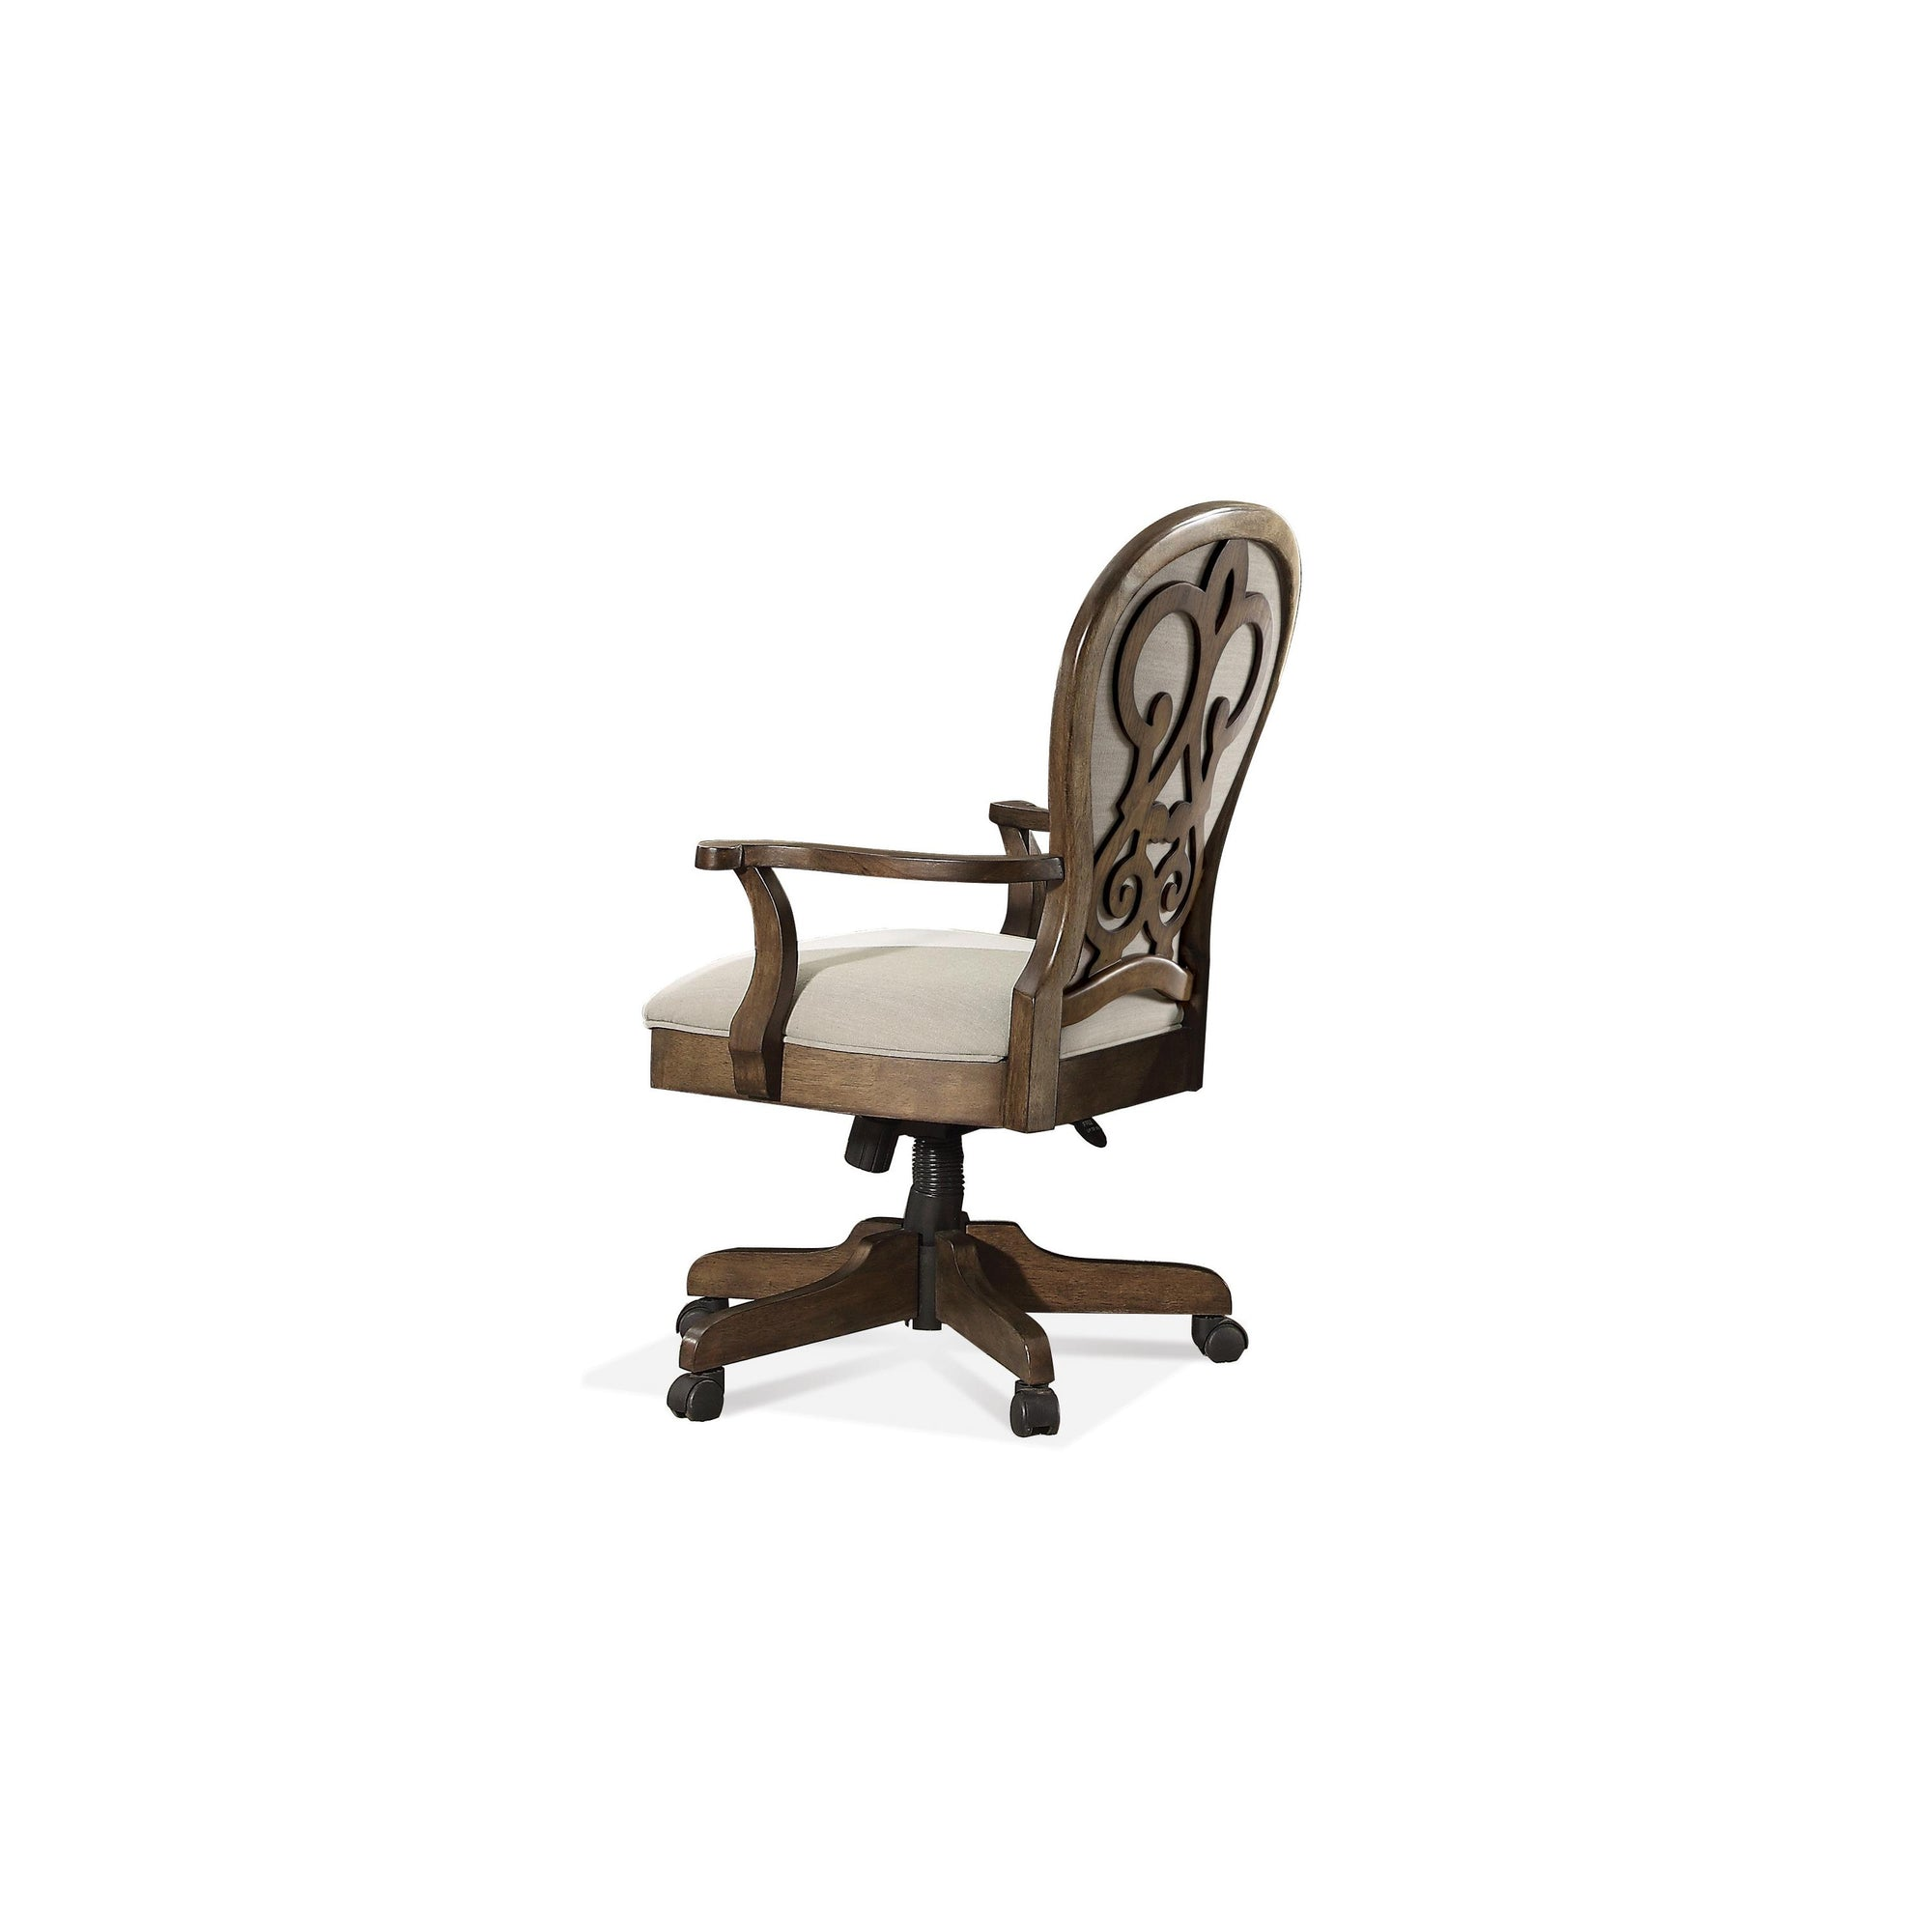 Belmeade Scrol Back Upholstered Desk Chair